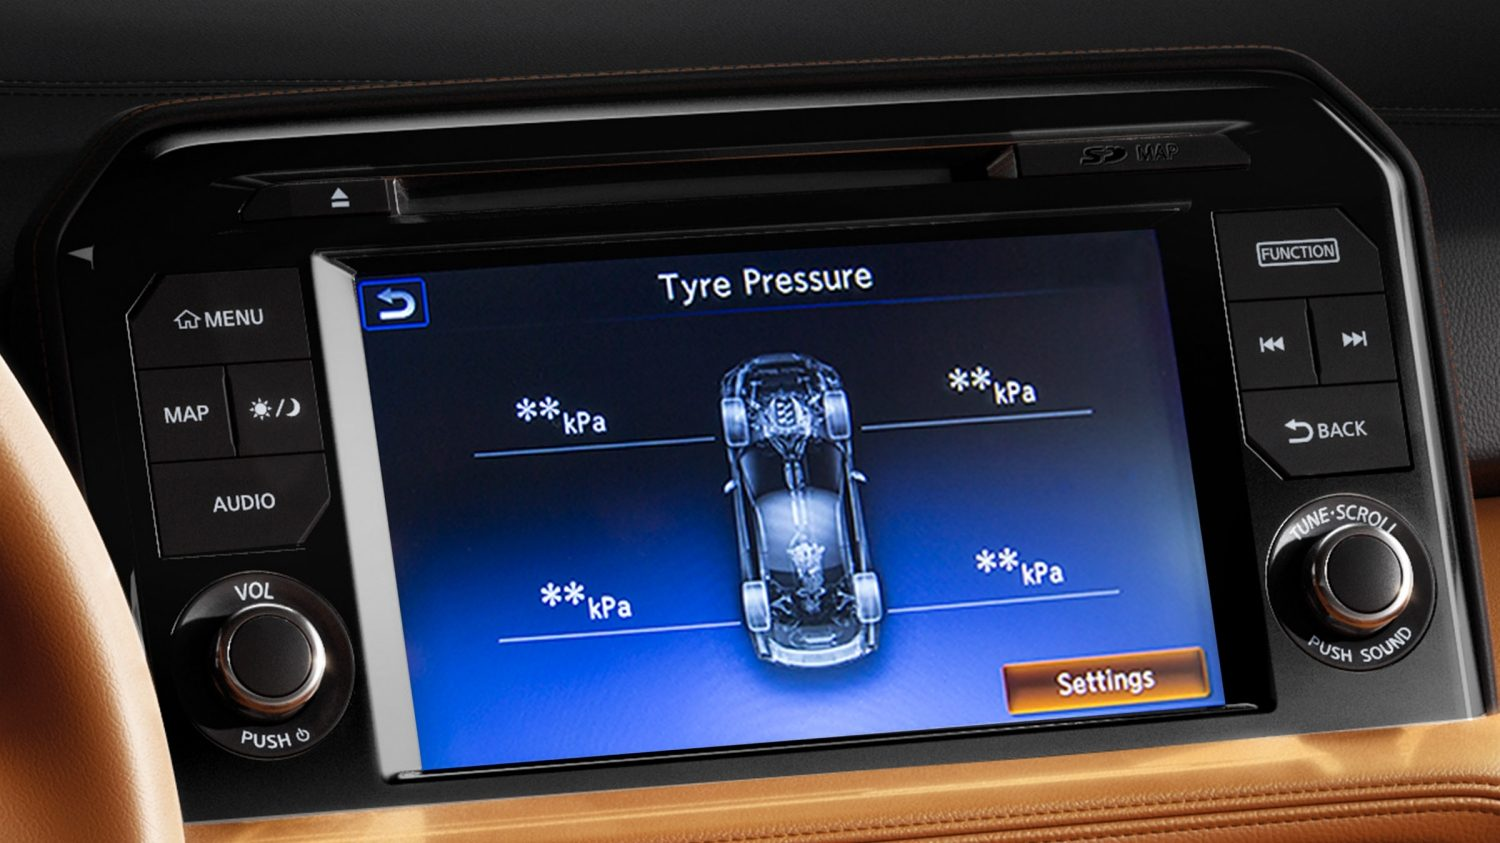 tyre Pressure Monitoring System Screen